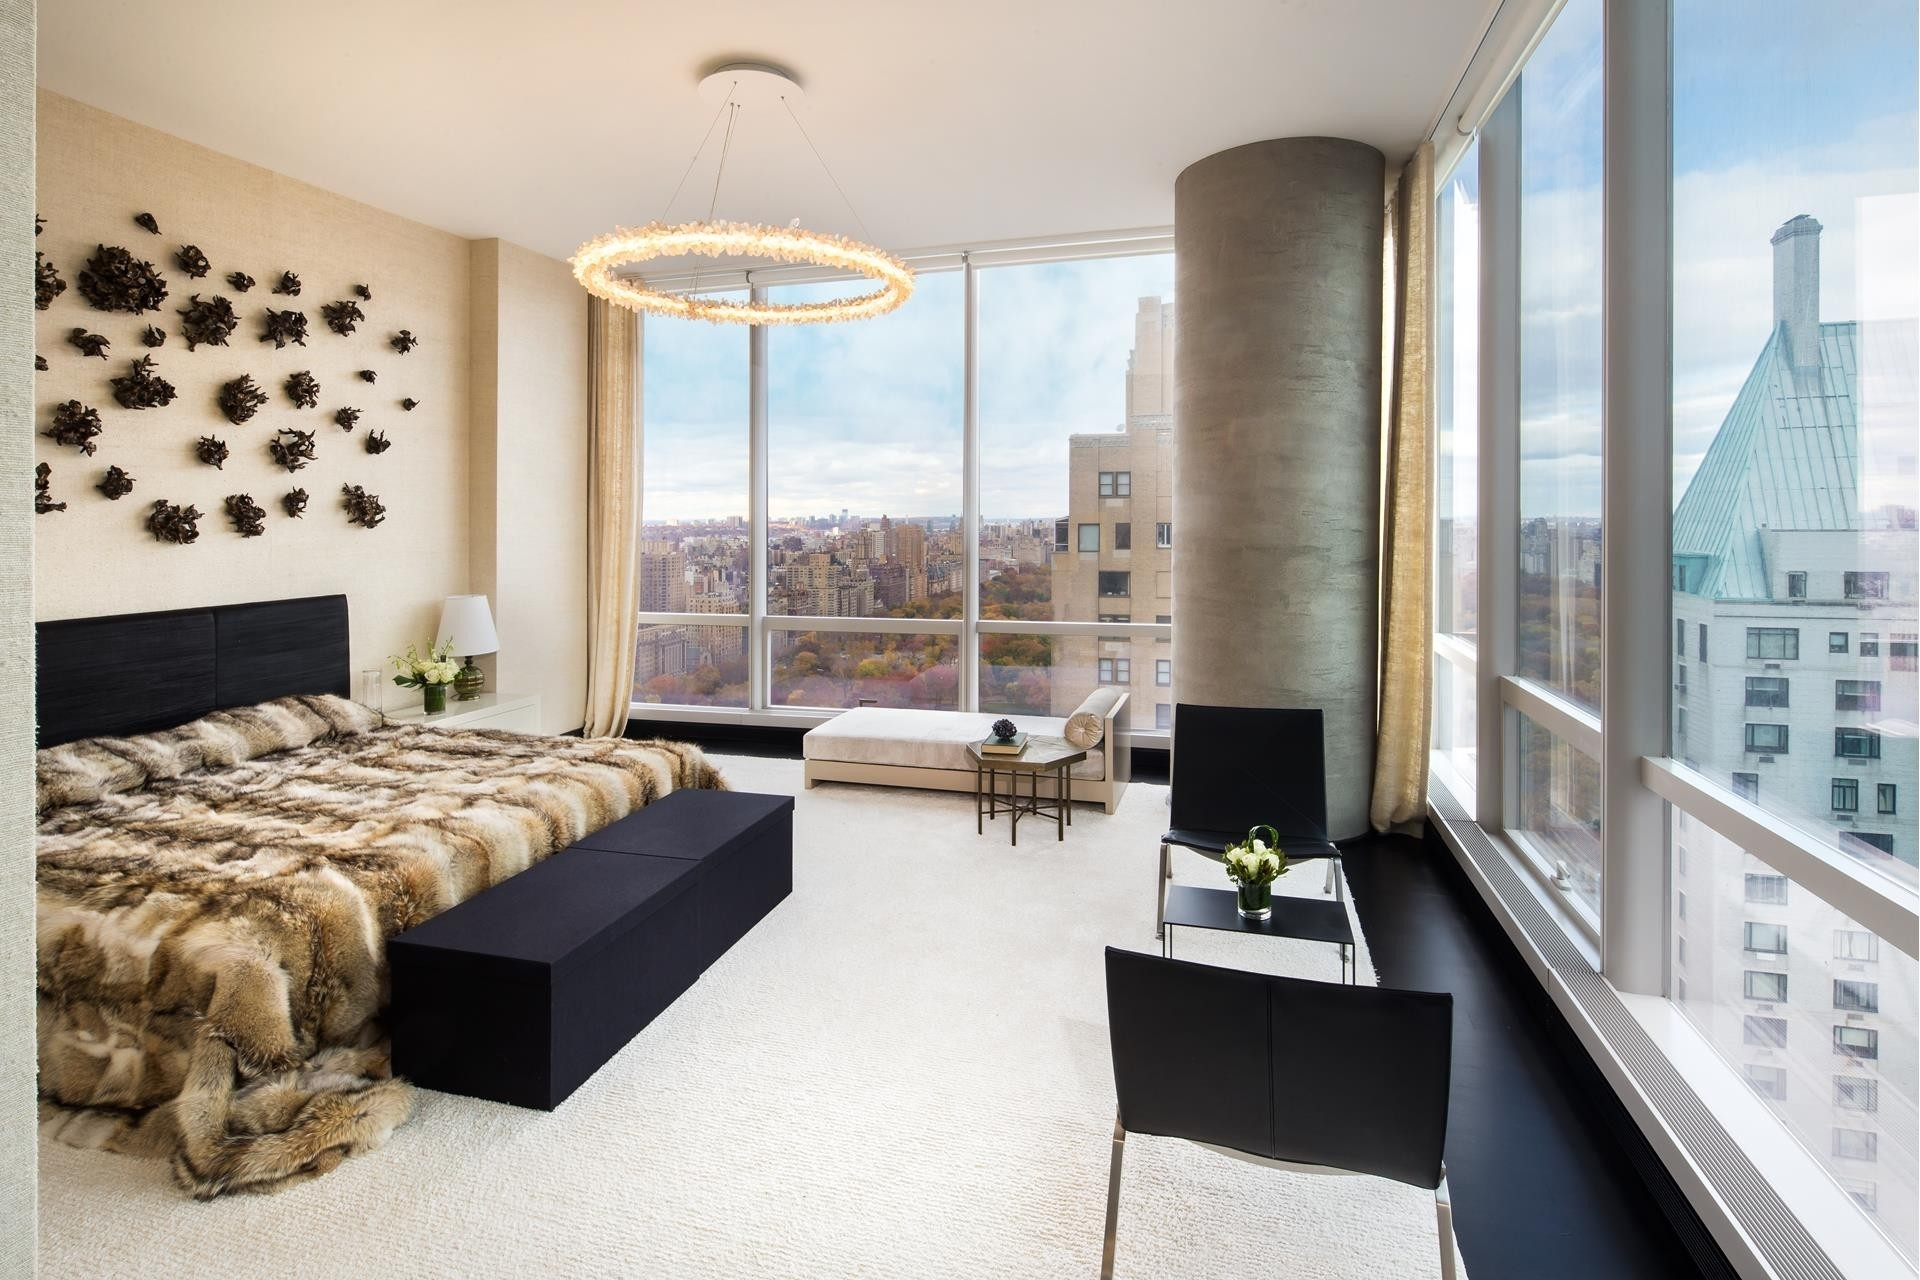 4. Condominiums for Sale at One57, 157 West 57th St, 41A Midtown West, New York, NY 10019